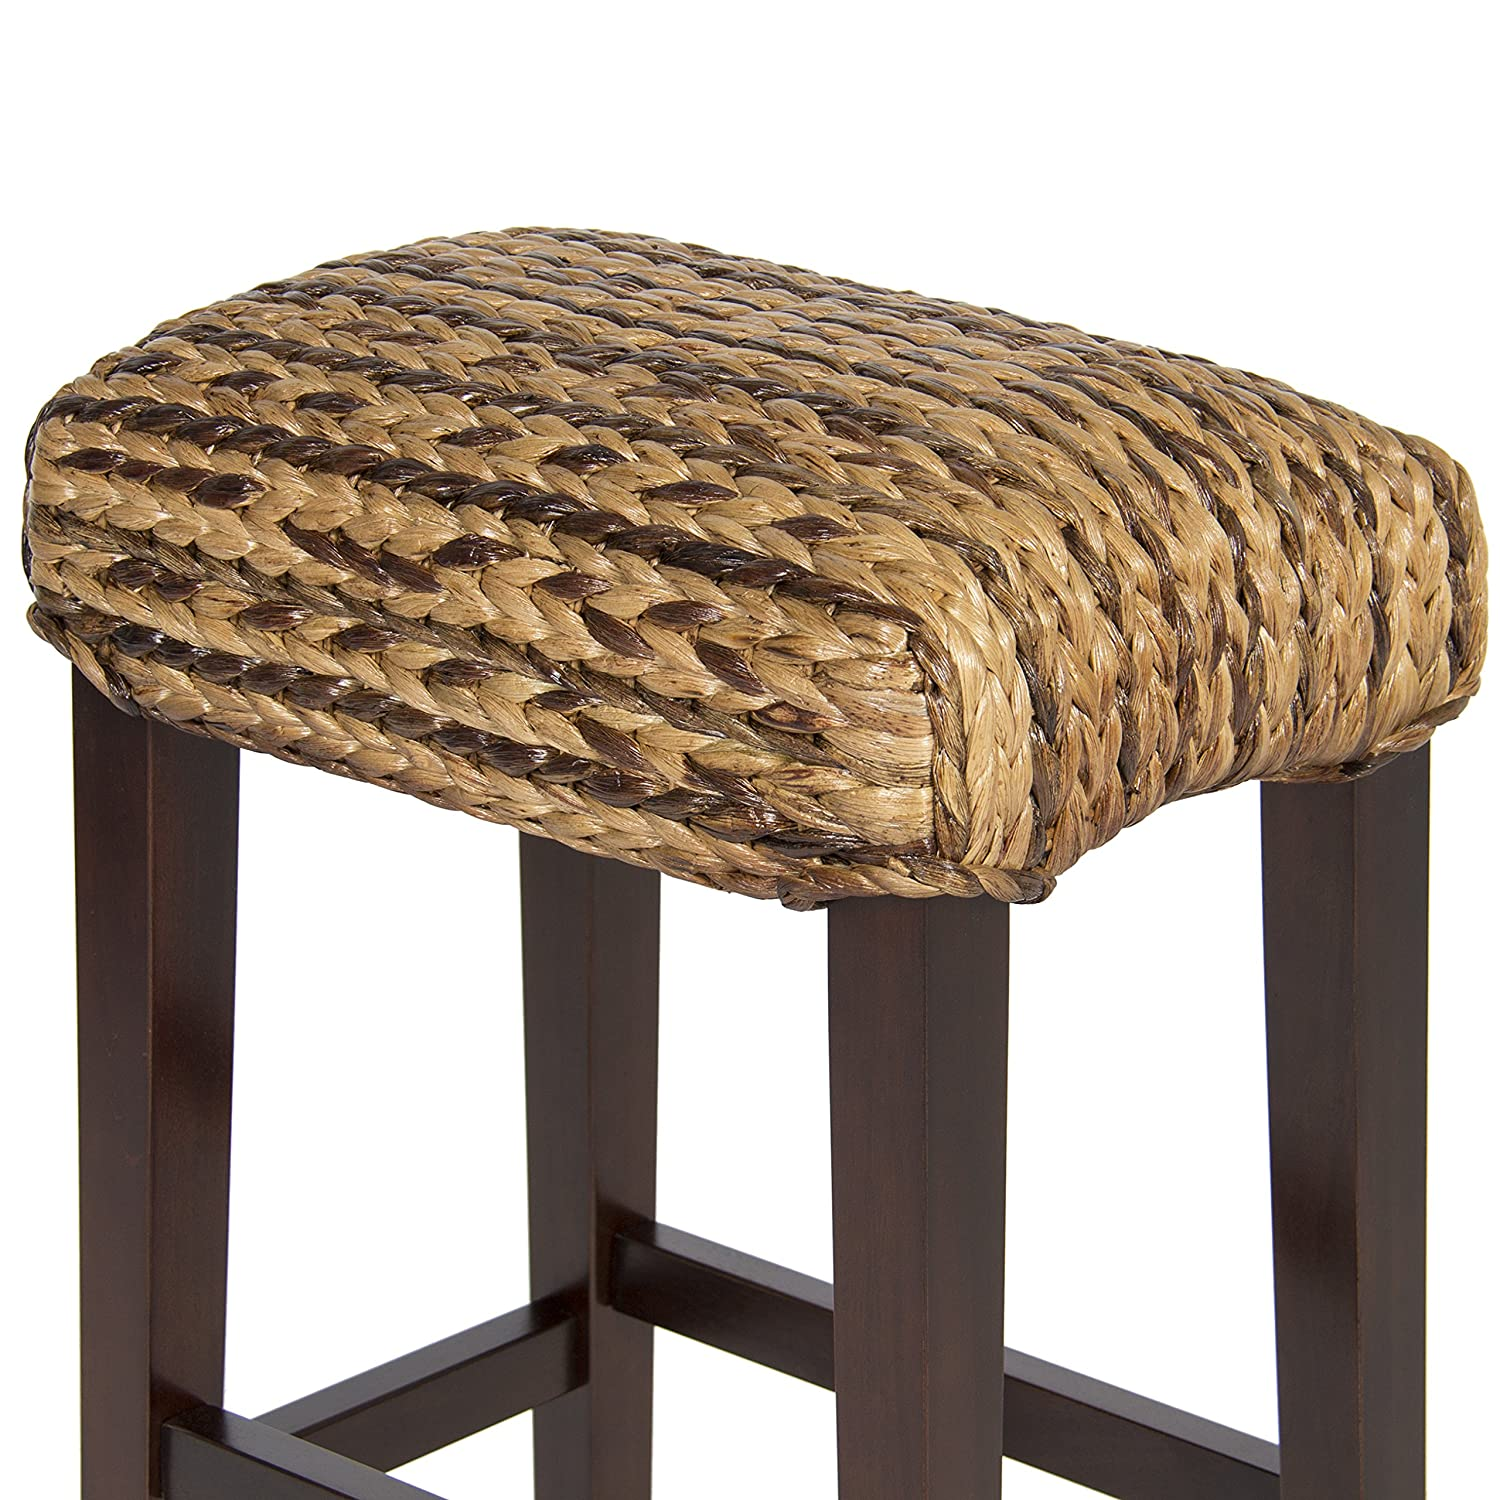 Amazon.com: Best Choice Products BCP Set of (2) Hand Woven Seagrass Bar  Stools Mahogany Wood Frame Bar Height: Home & Kitchen